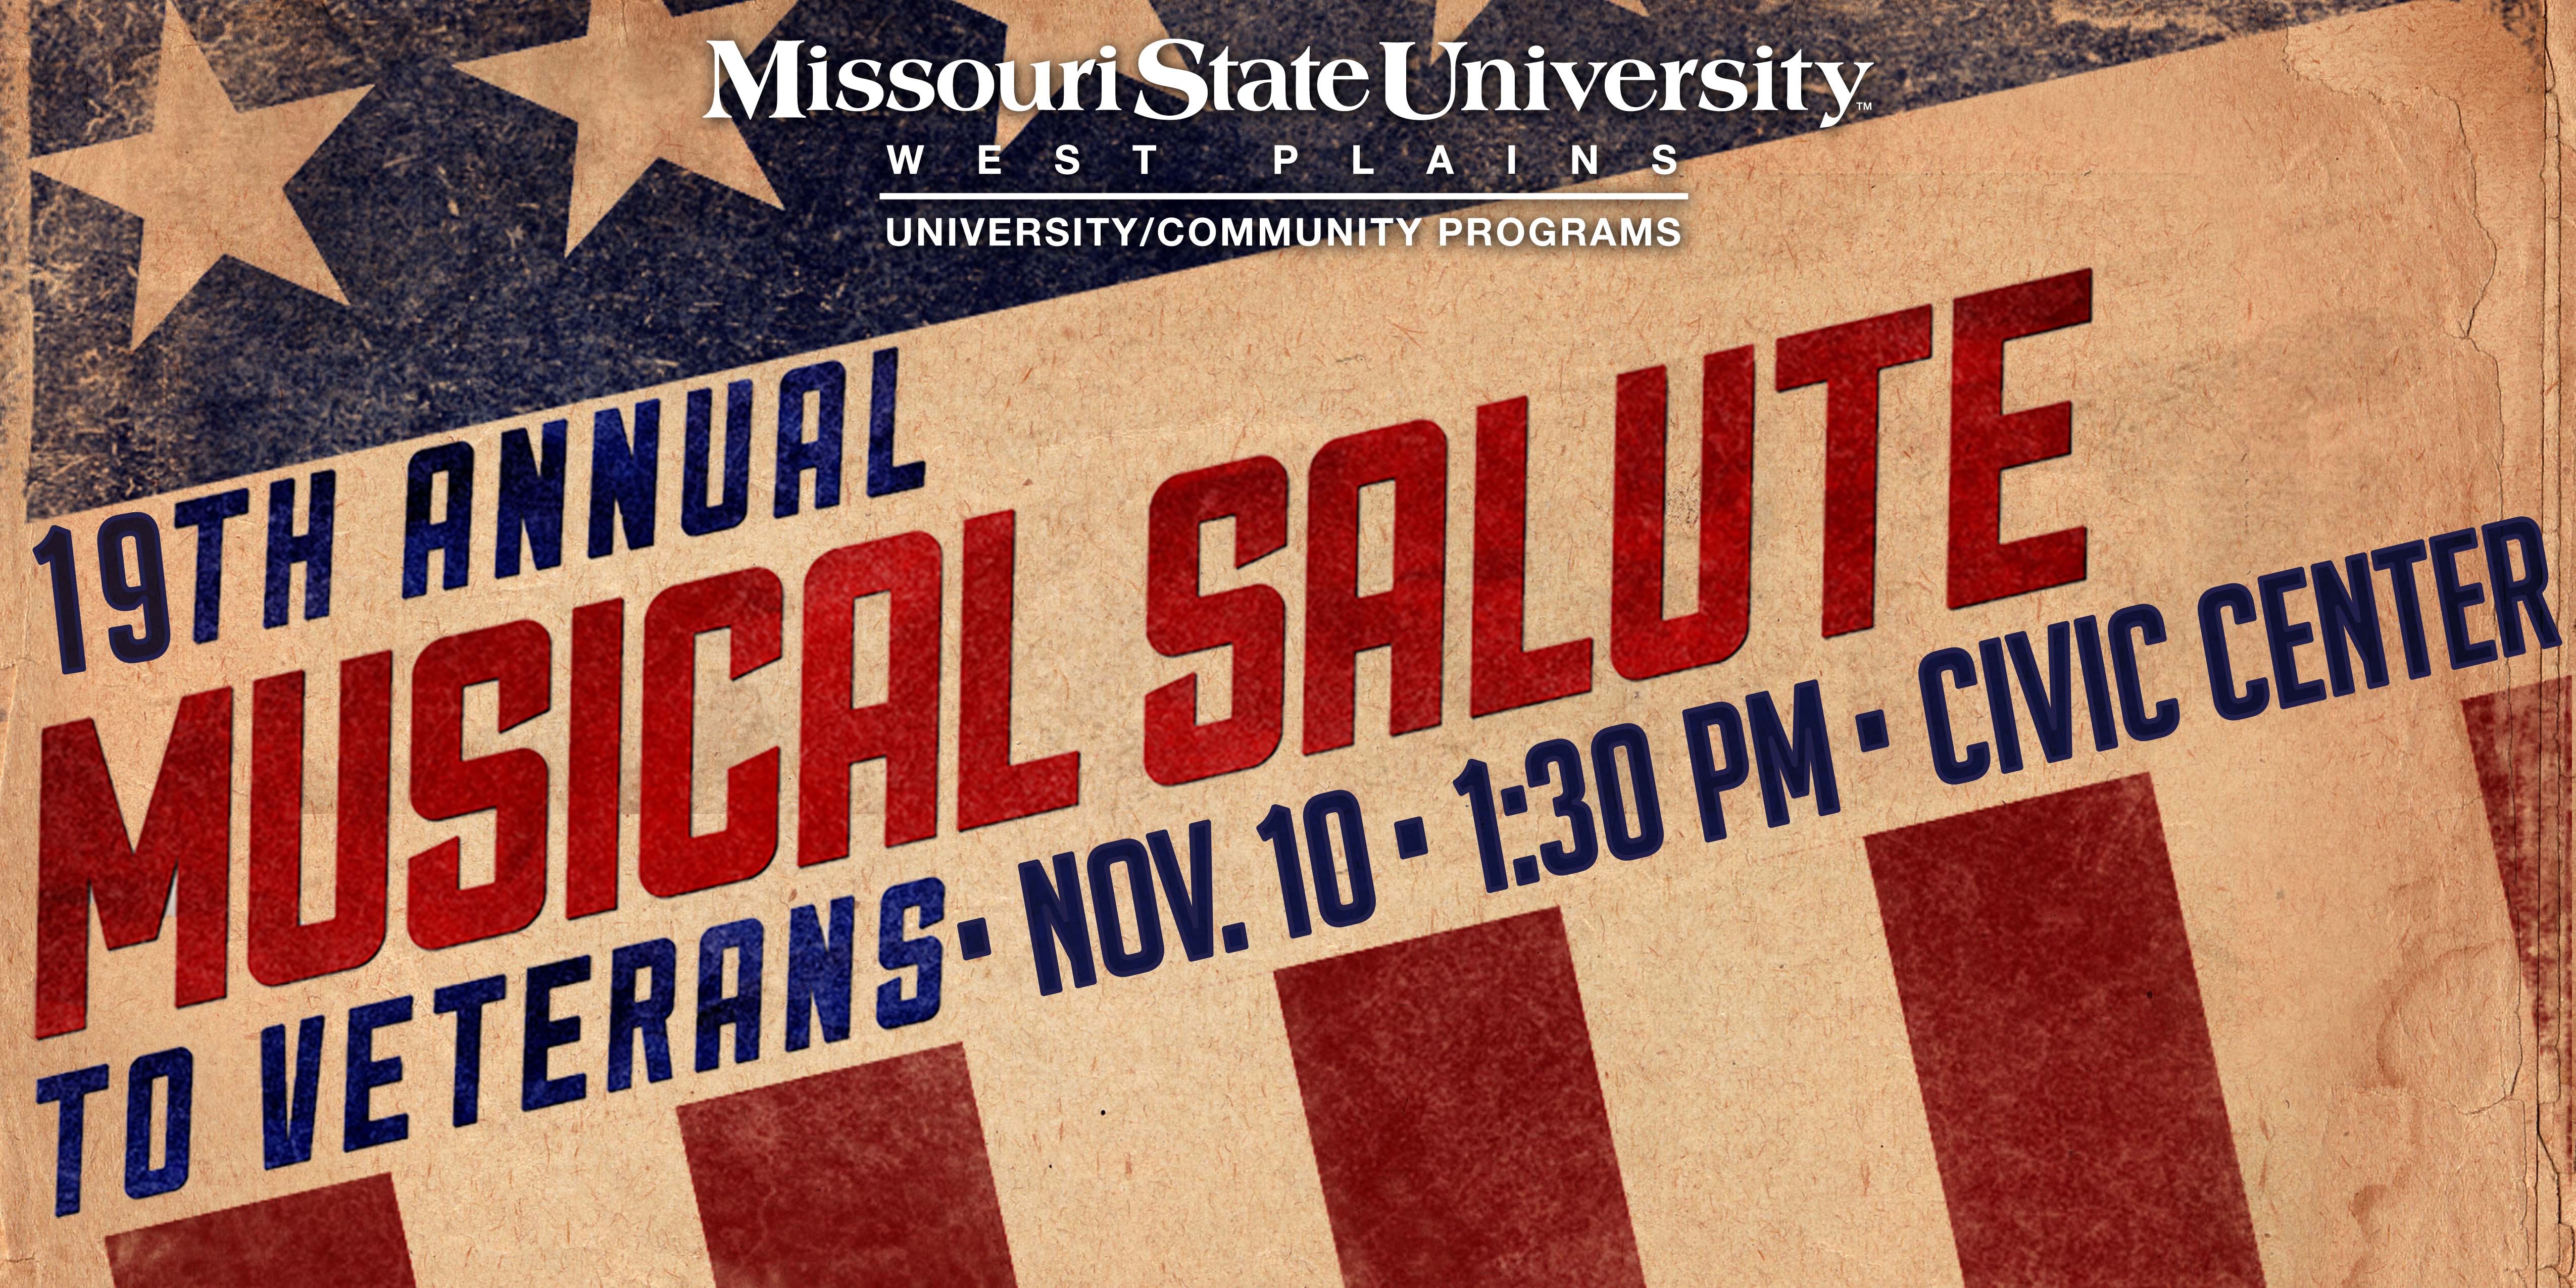 """""""A Musical Salute to Veterans"""" will take place at 1:30 p.m. November 10 at the West Plains Civic Center."""